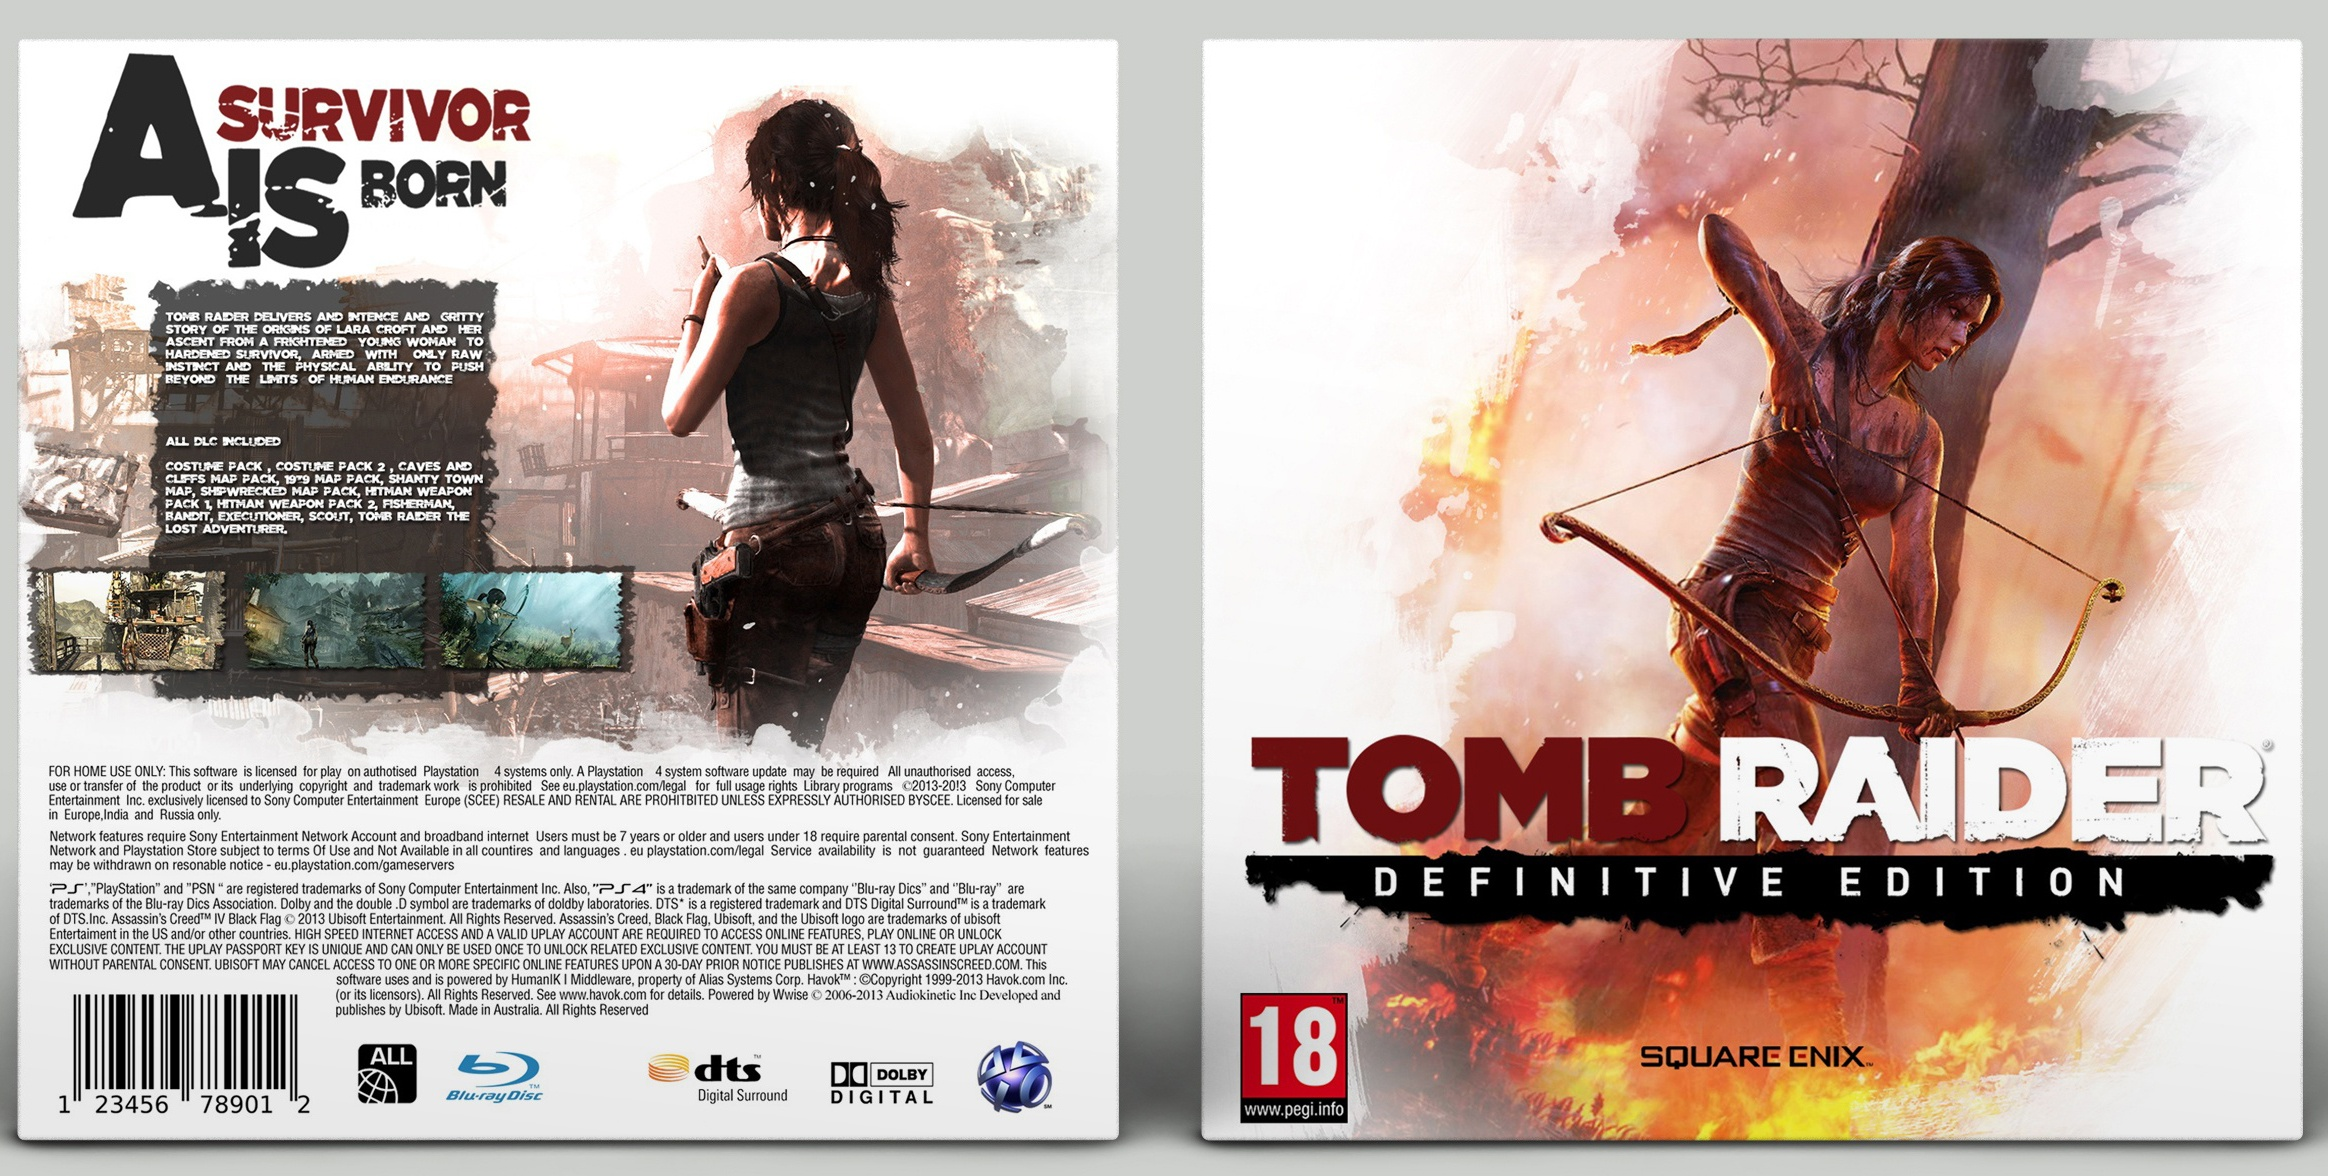 Tomb Raider: Definitive Edition box cover